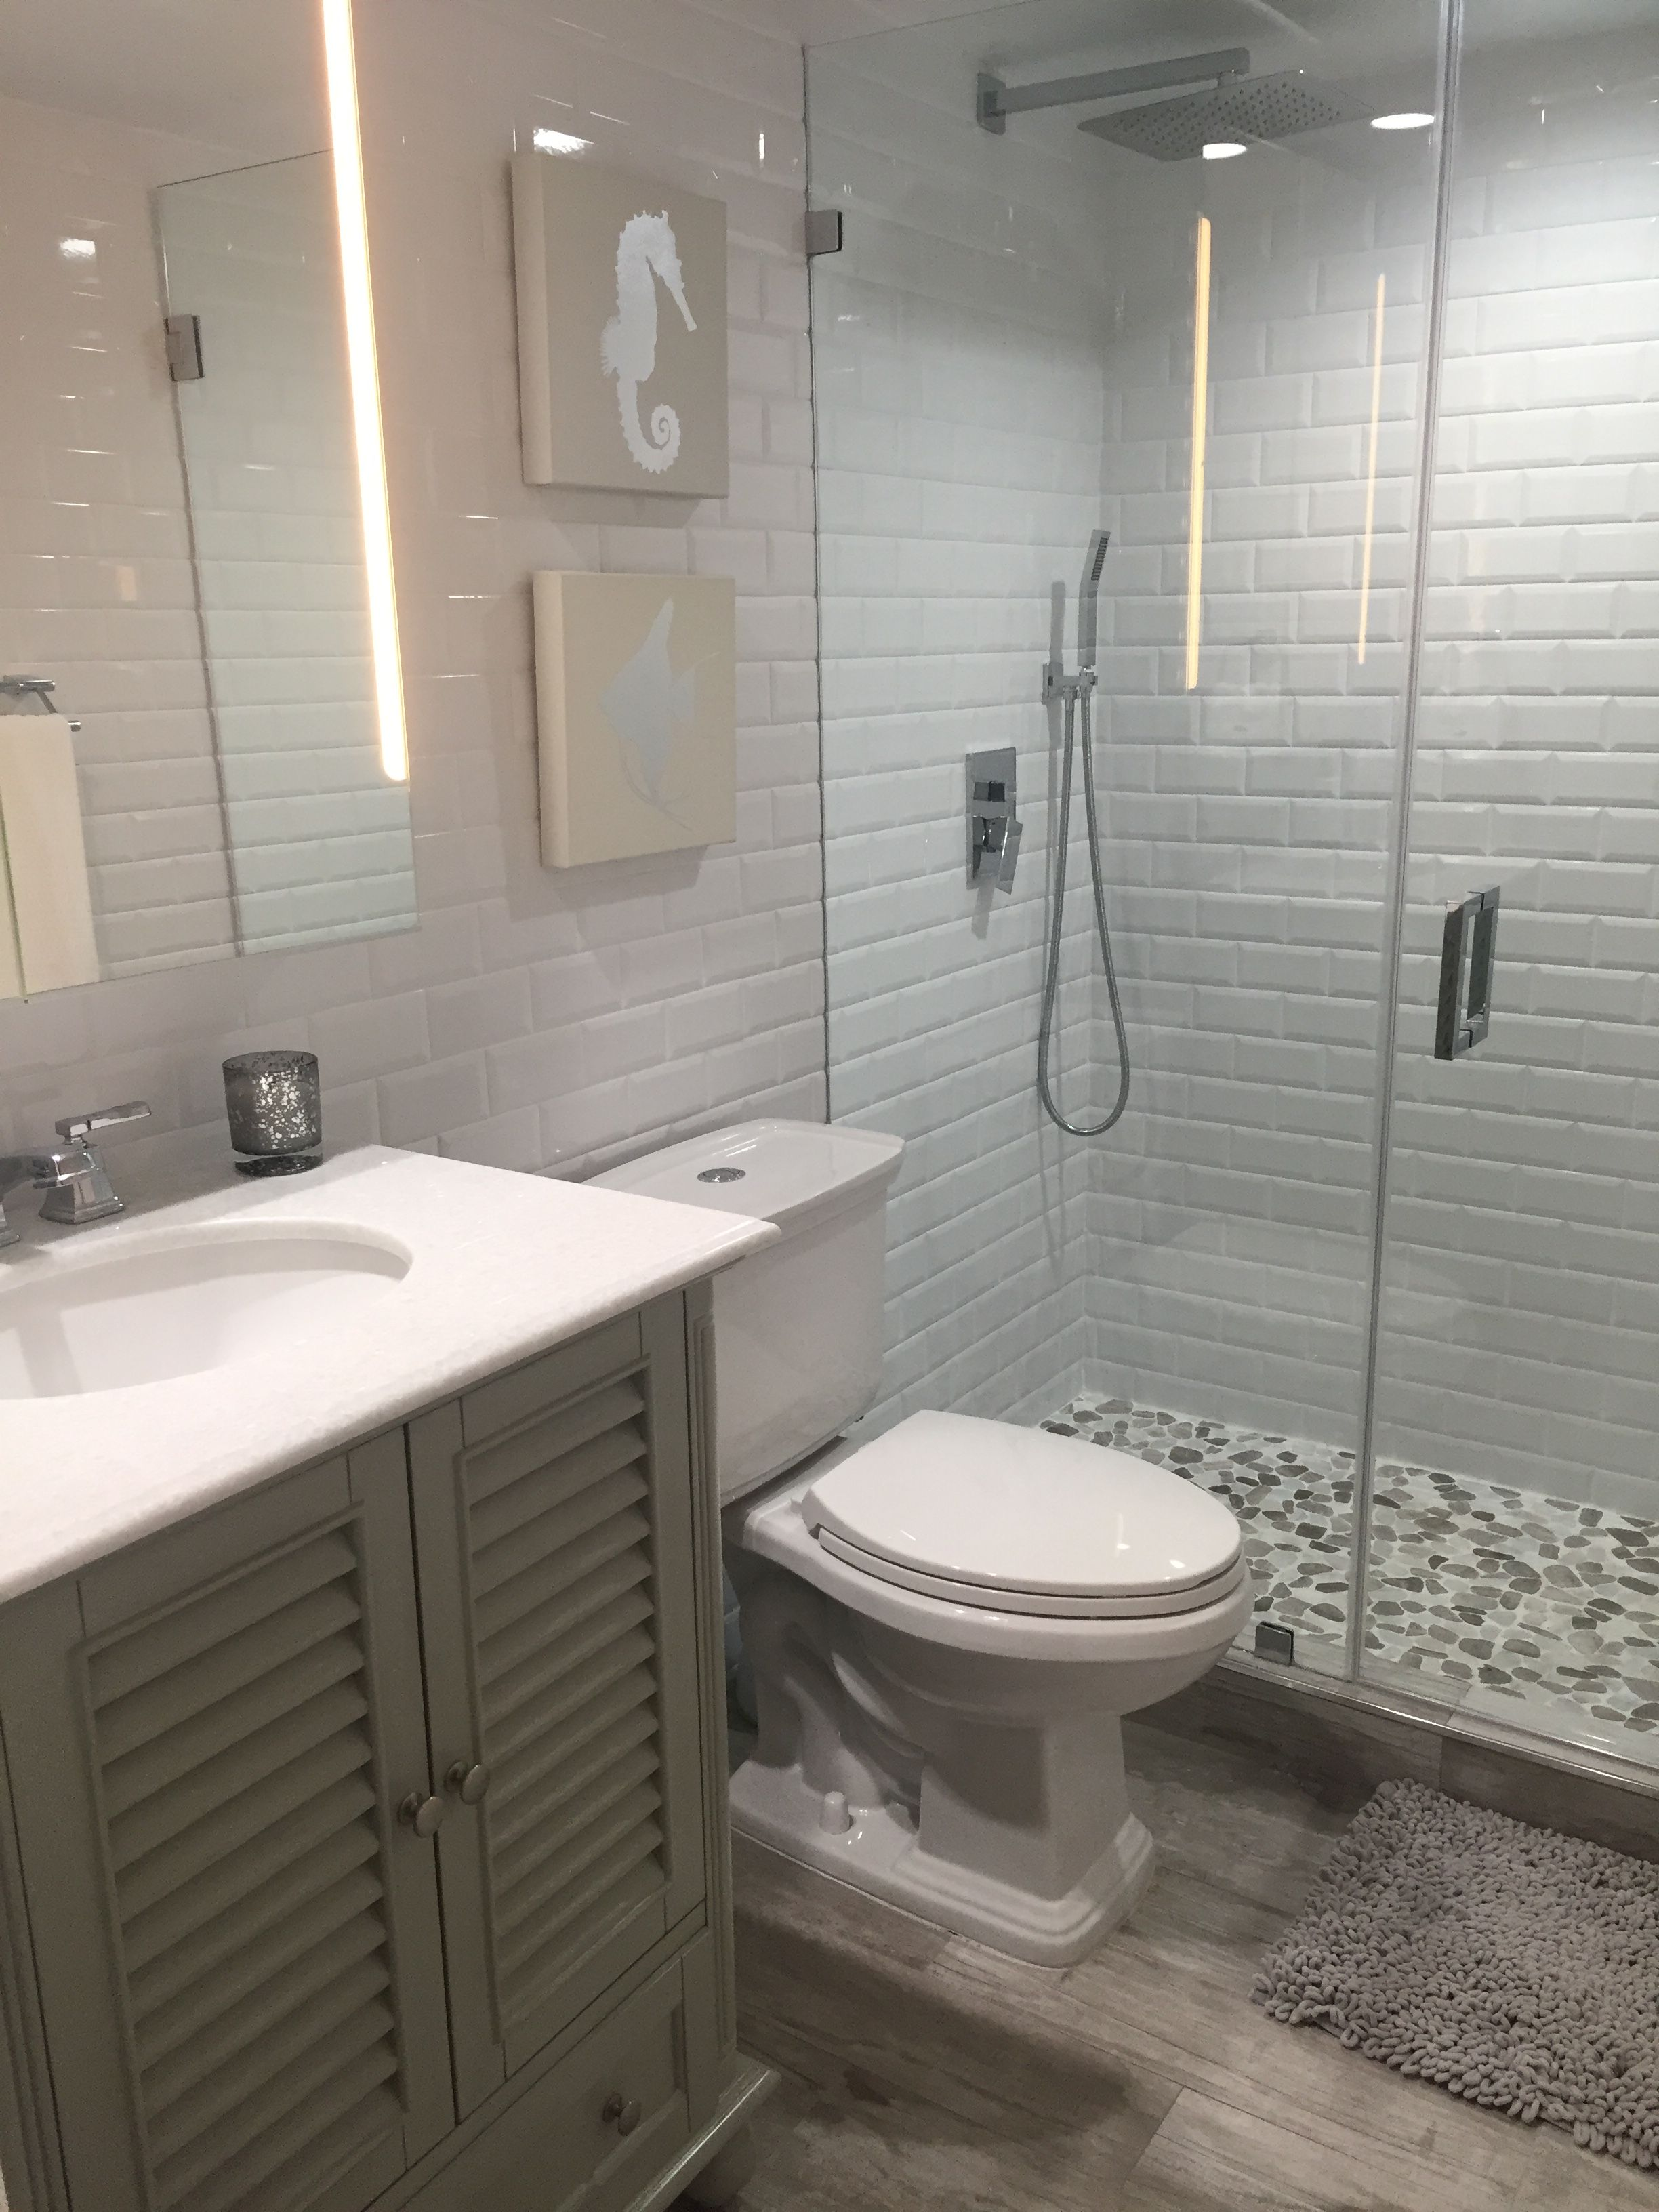 Augusta bathroom remodel contractors, Augusta bathroom remodeling, Augusta bathroom remodeling quote.